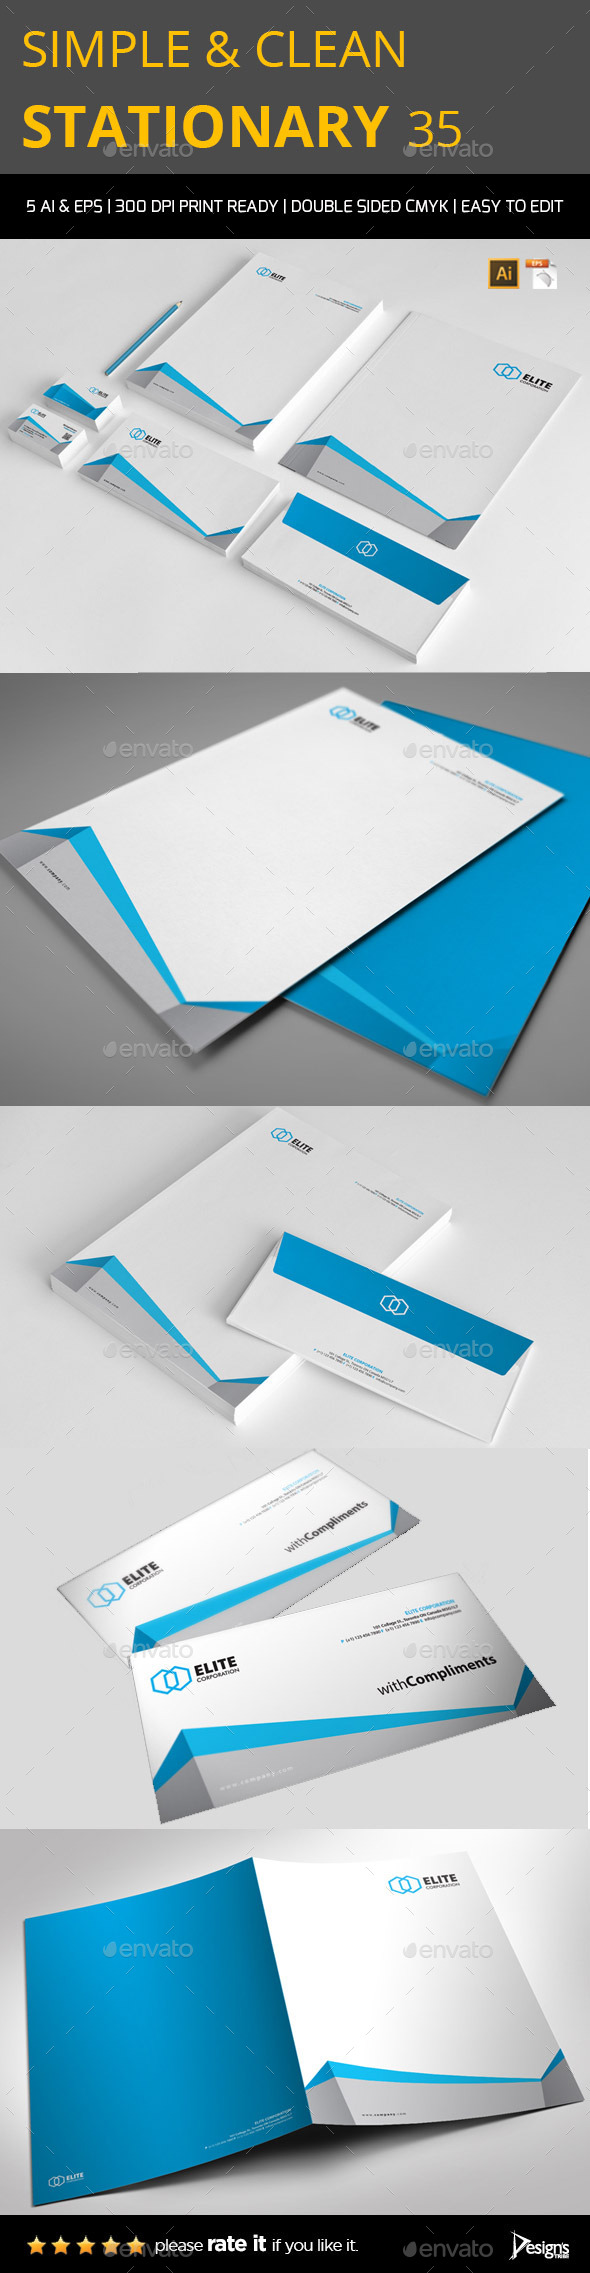 GraphicRiver Stationery 3 9897564